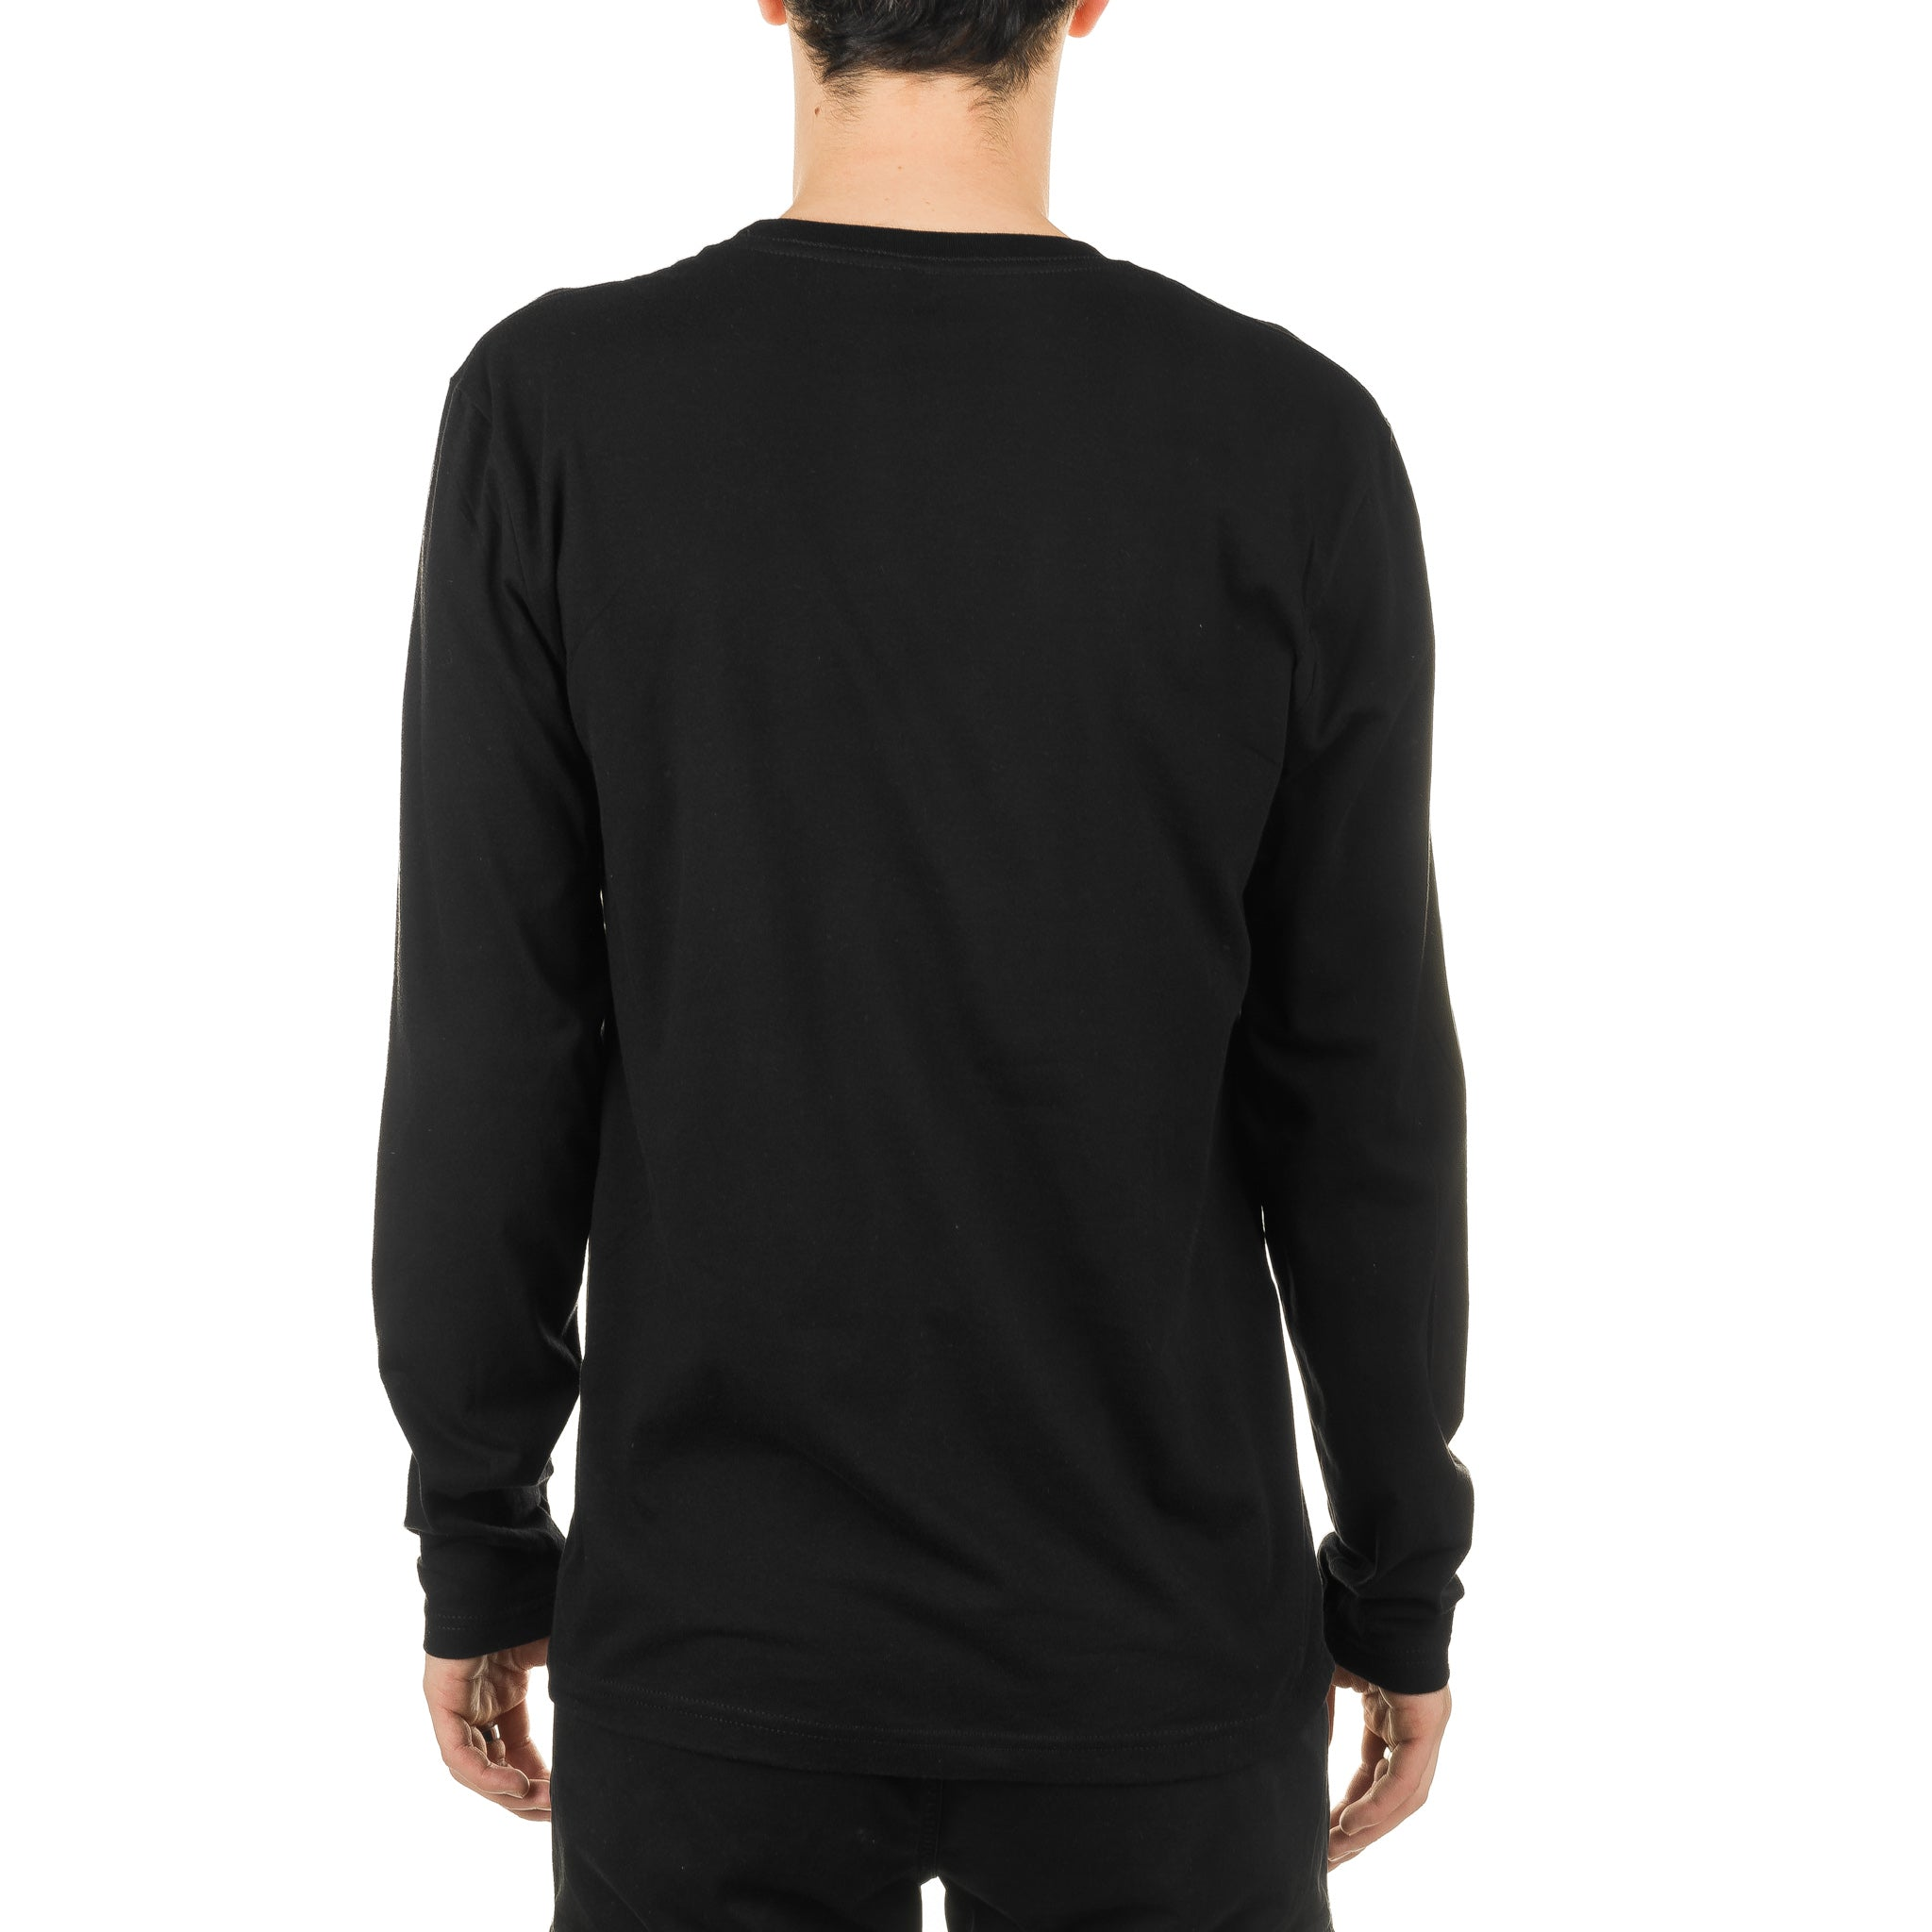 NB Hoops Ball LS Tee MT01673 Black